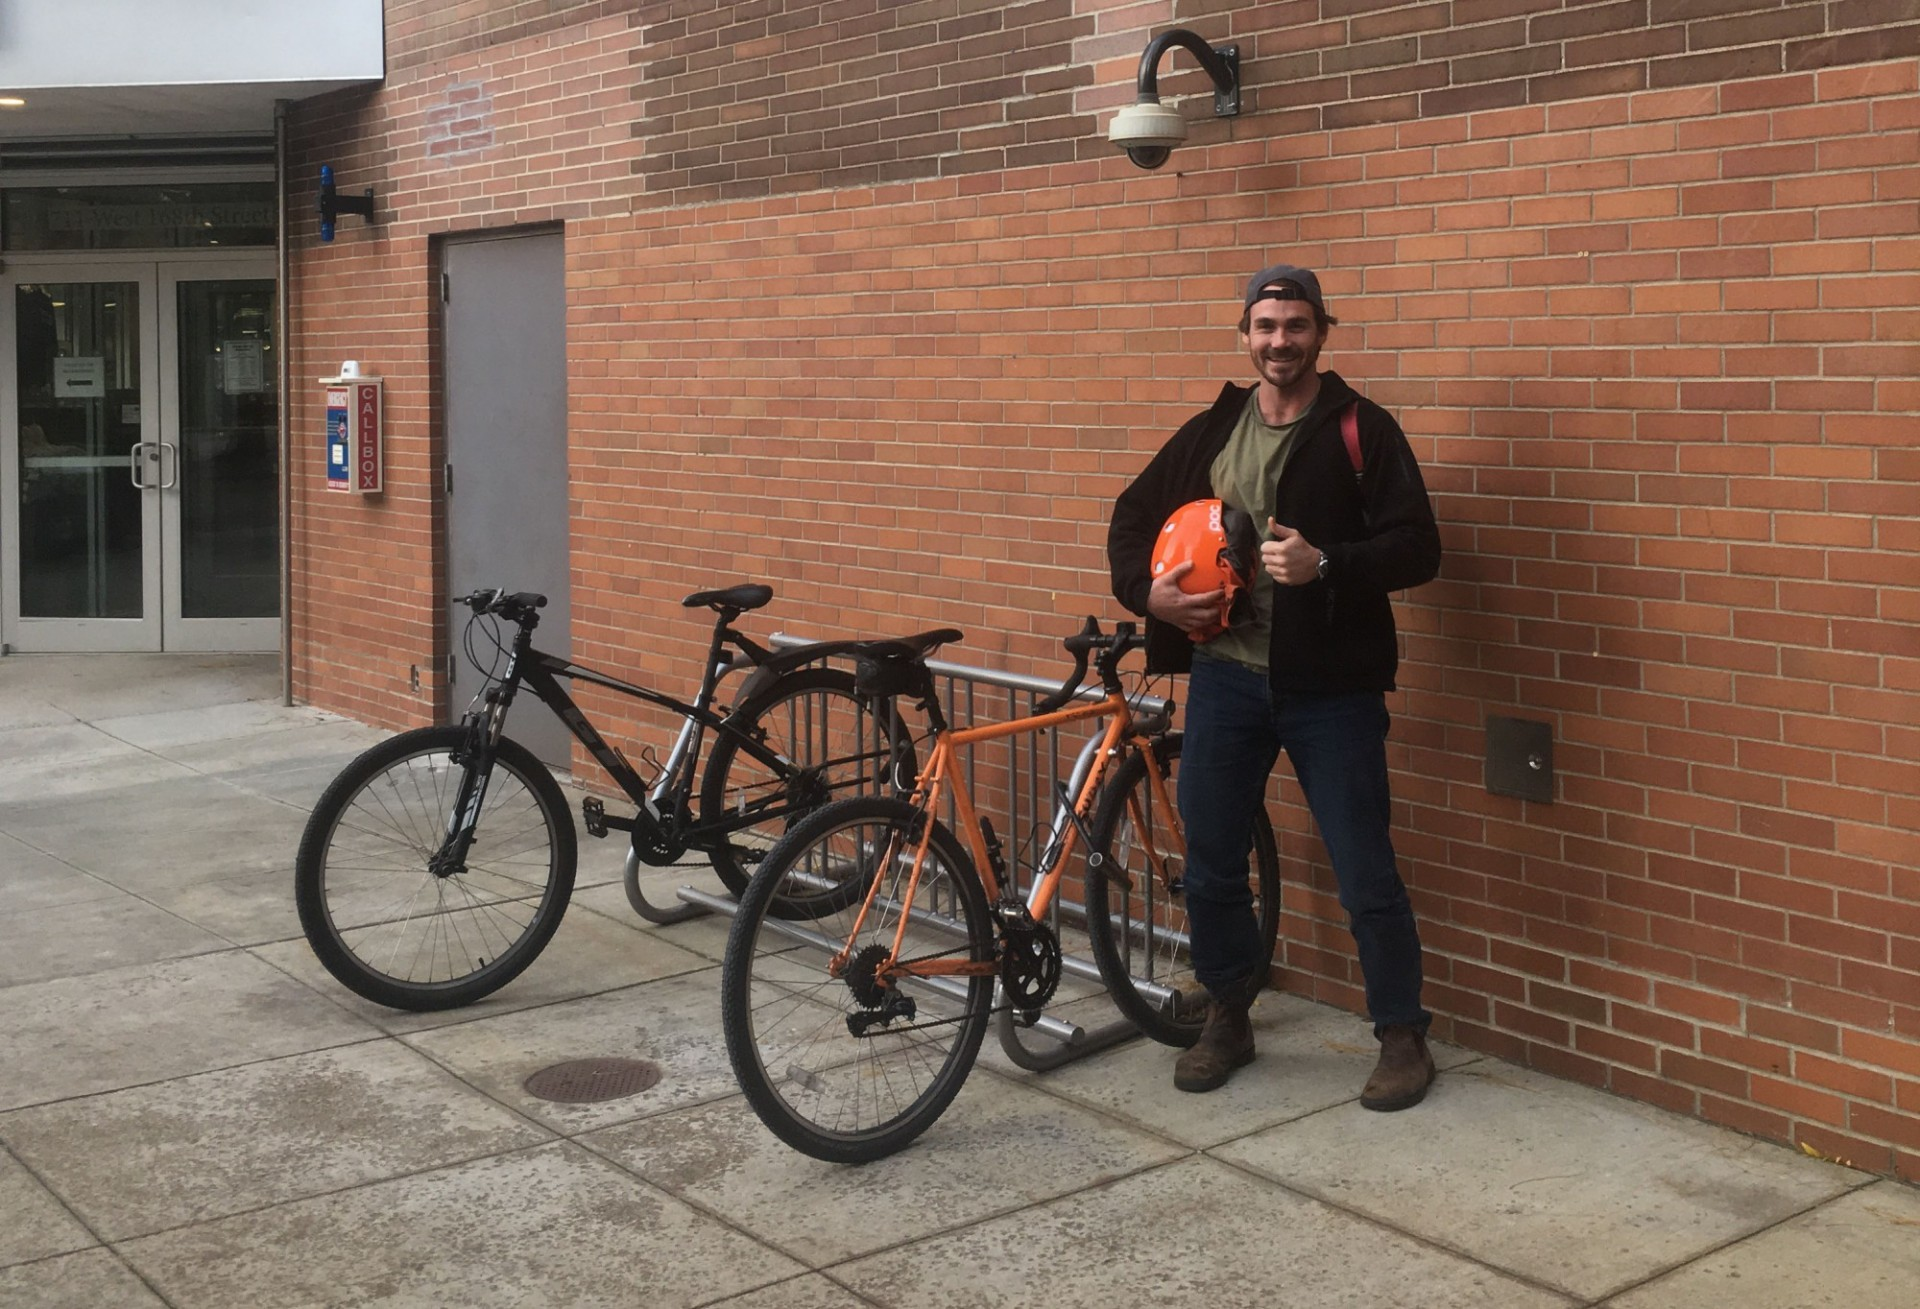 William Forsyth, a second-year student in the Masters of Public Health (MPH) program at the Medical Center campus, takes the ferry with his bike from Red Hook, Brooklyn to Wall Street and then rides from Wall Street to CUIMC.